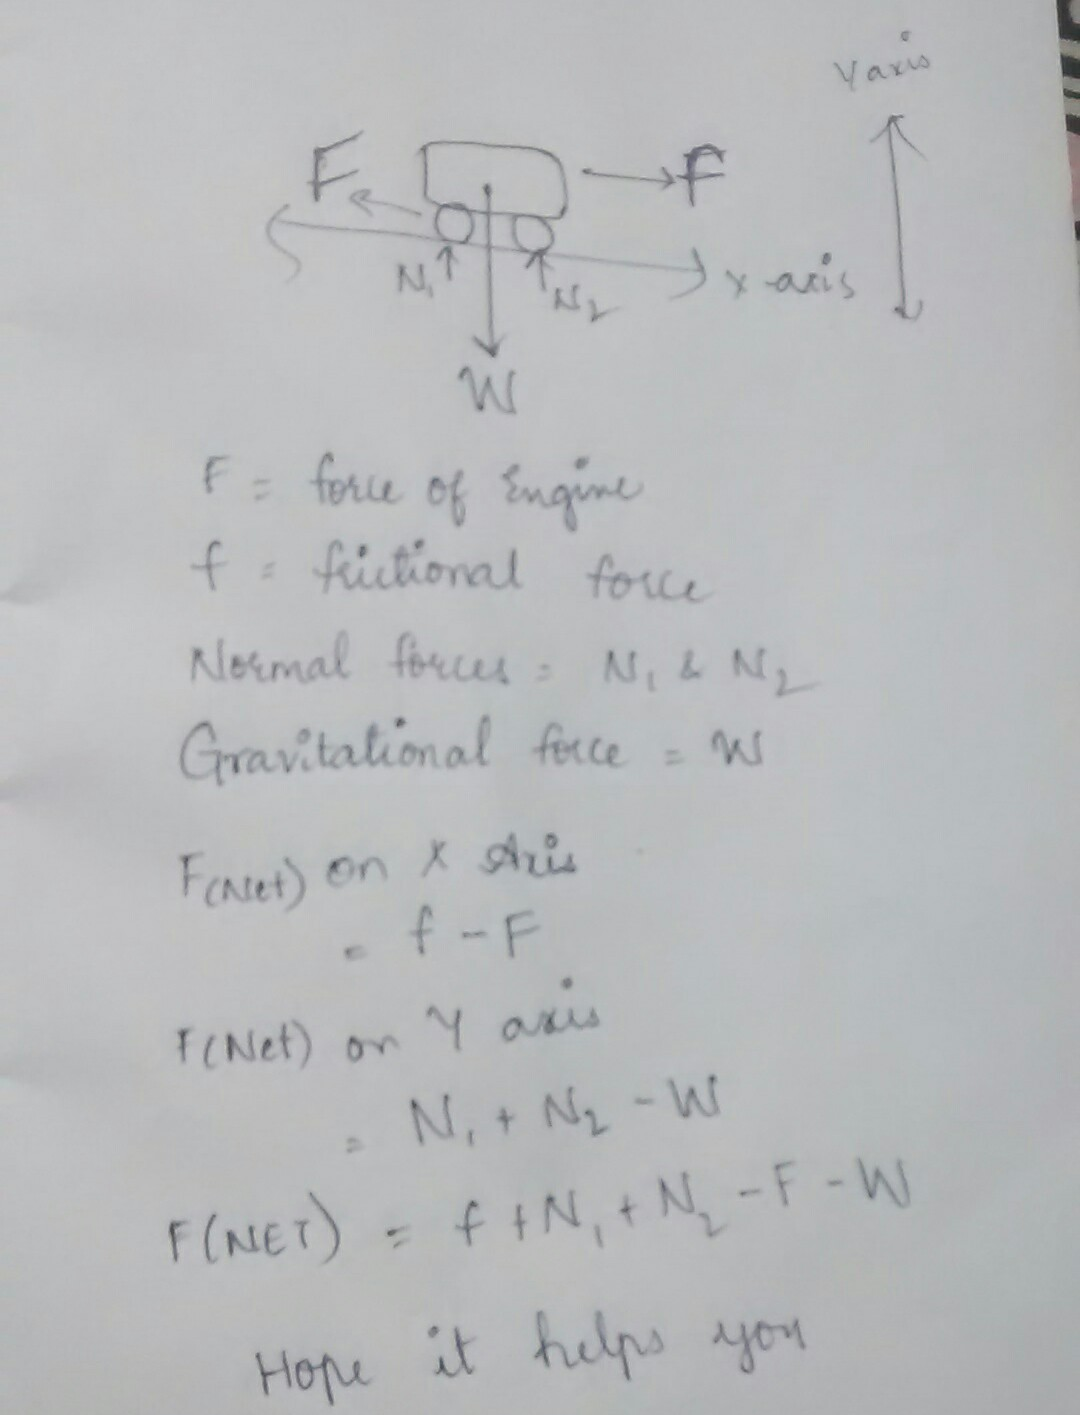 Draw and explain a free body diagram to show all the